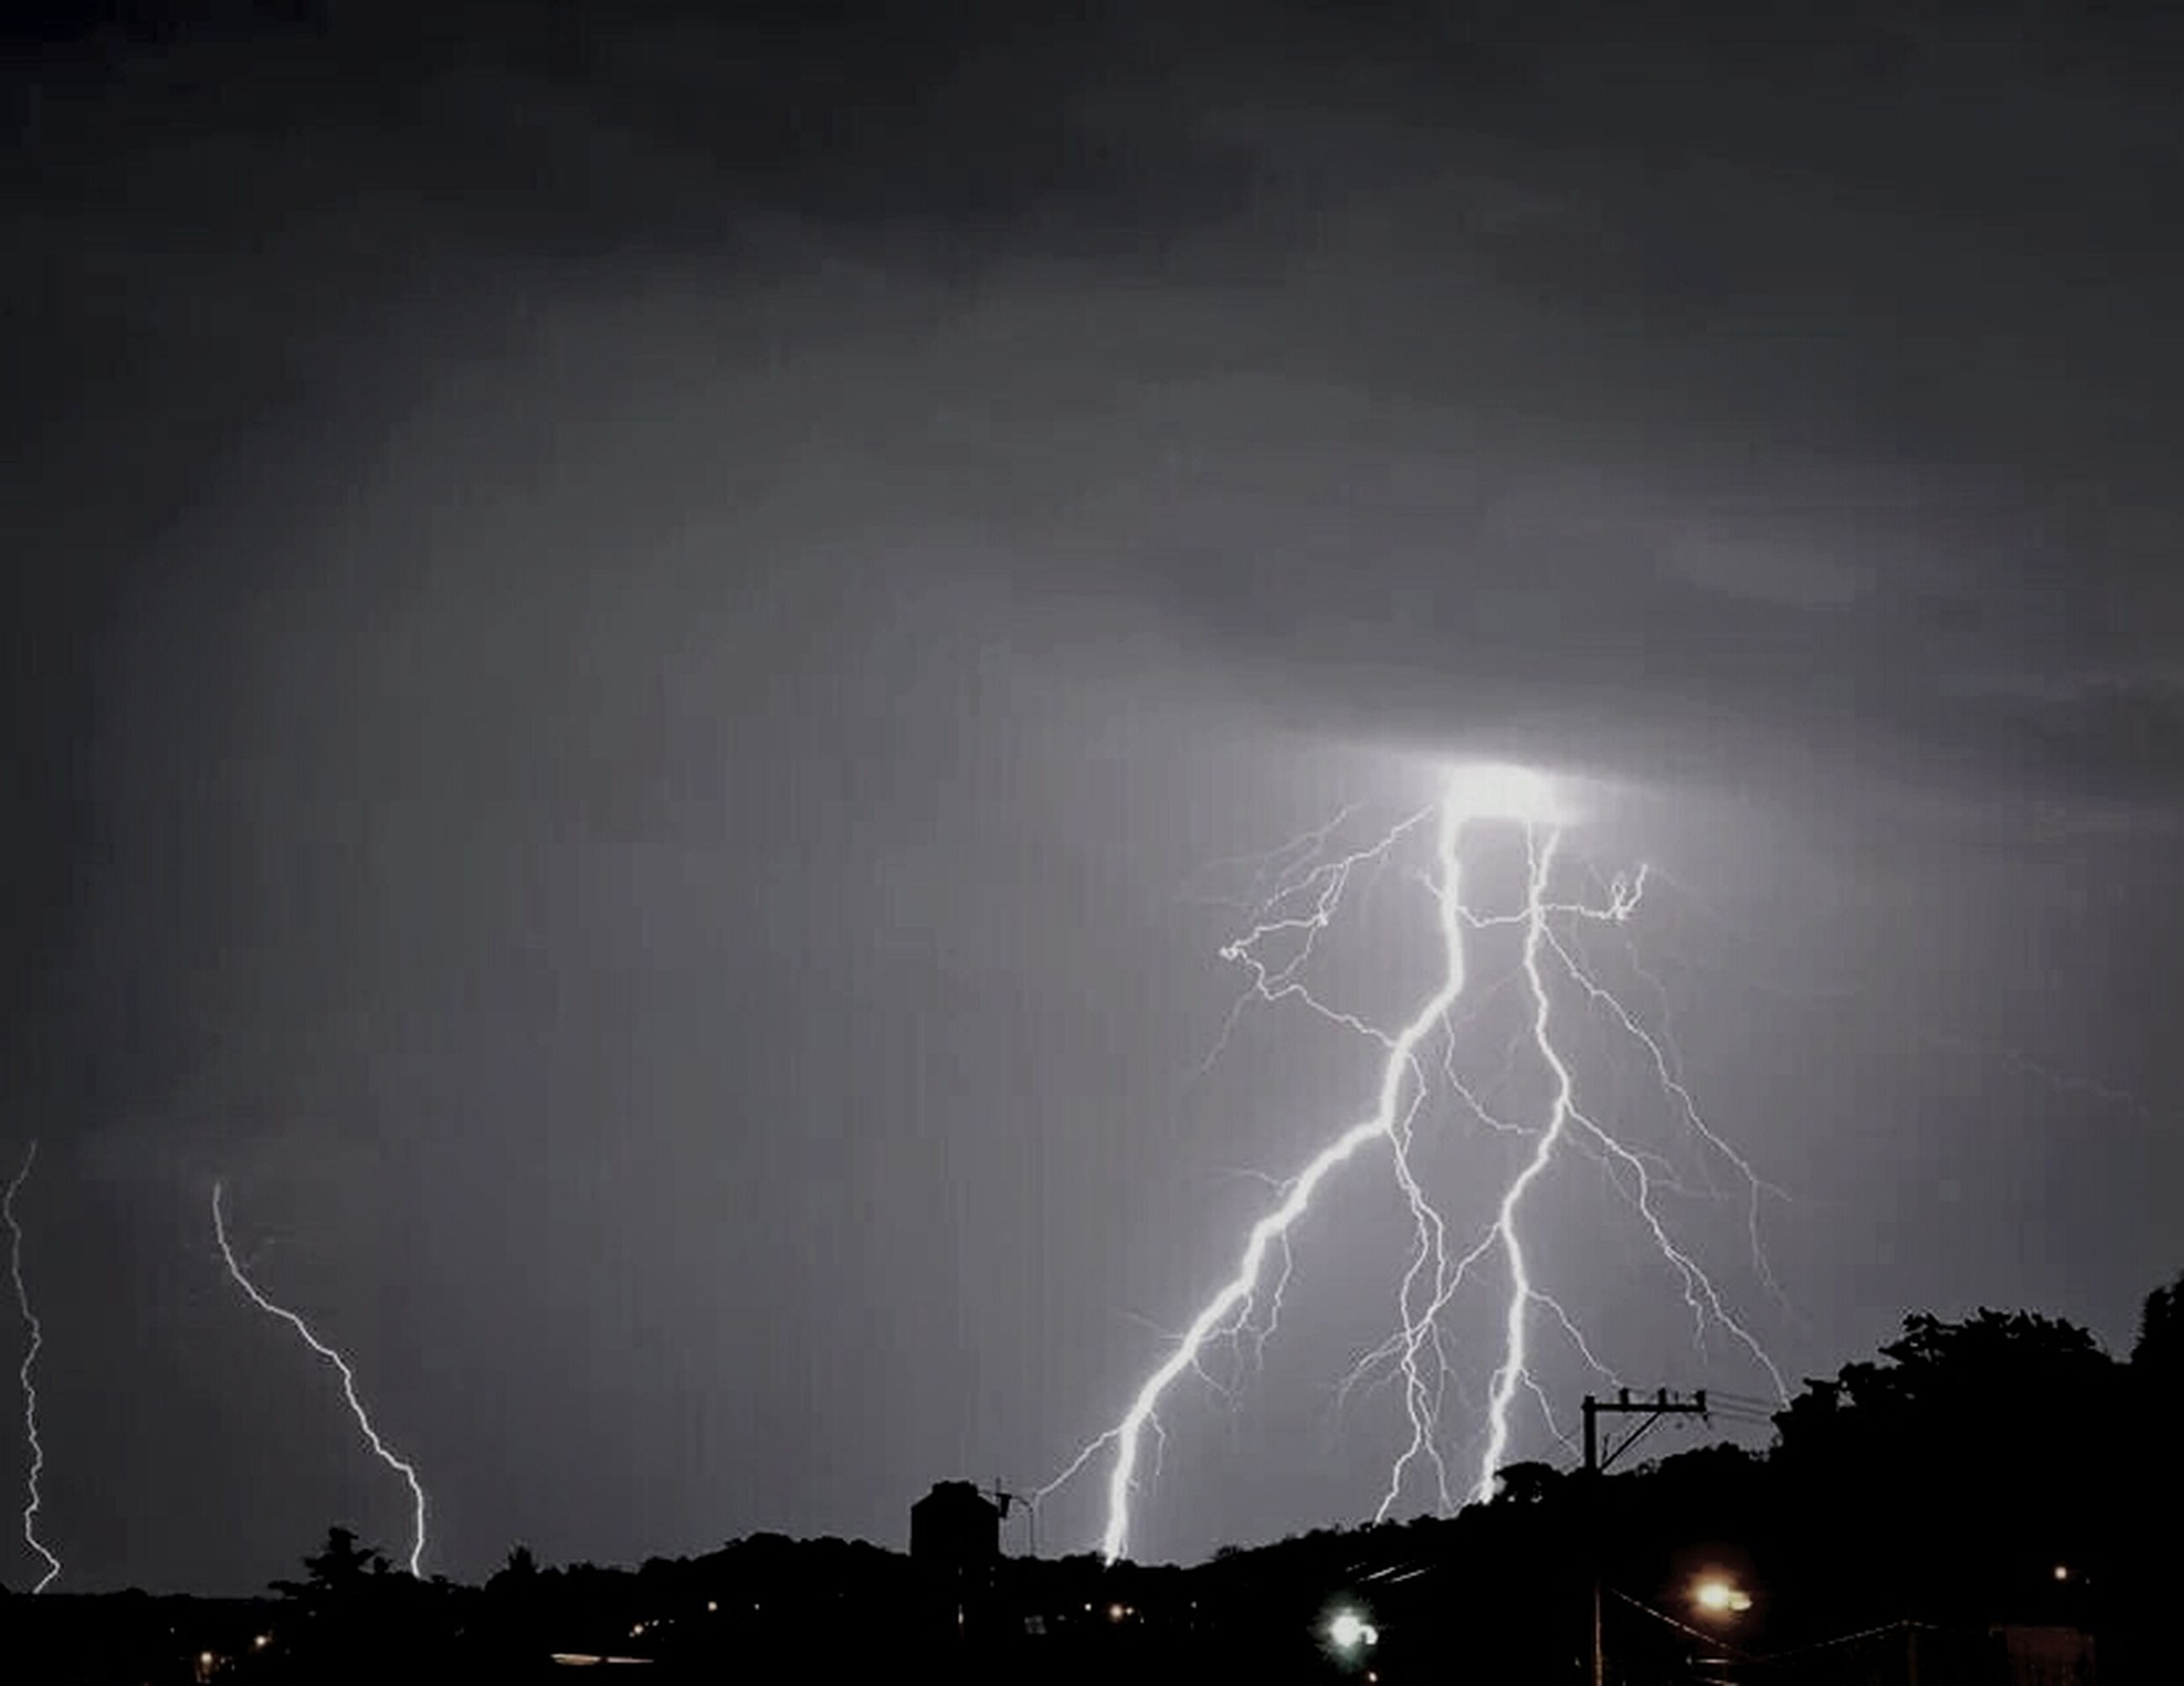 night, illuminated, lightning, sky, thunderstorm, power in nature, low angle view, long exposure, electricity, glowing, forked lightning, storm, light - natural phenomenon, outdoors, motion, no people, nature, weather, light, beauty in nature